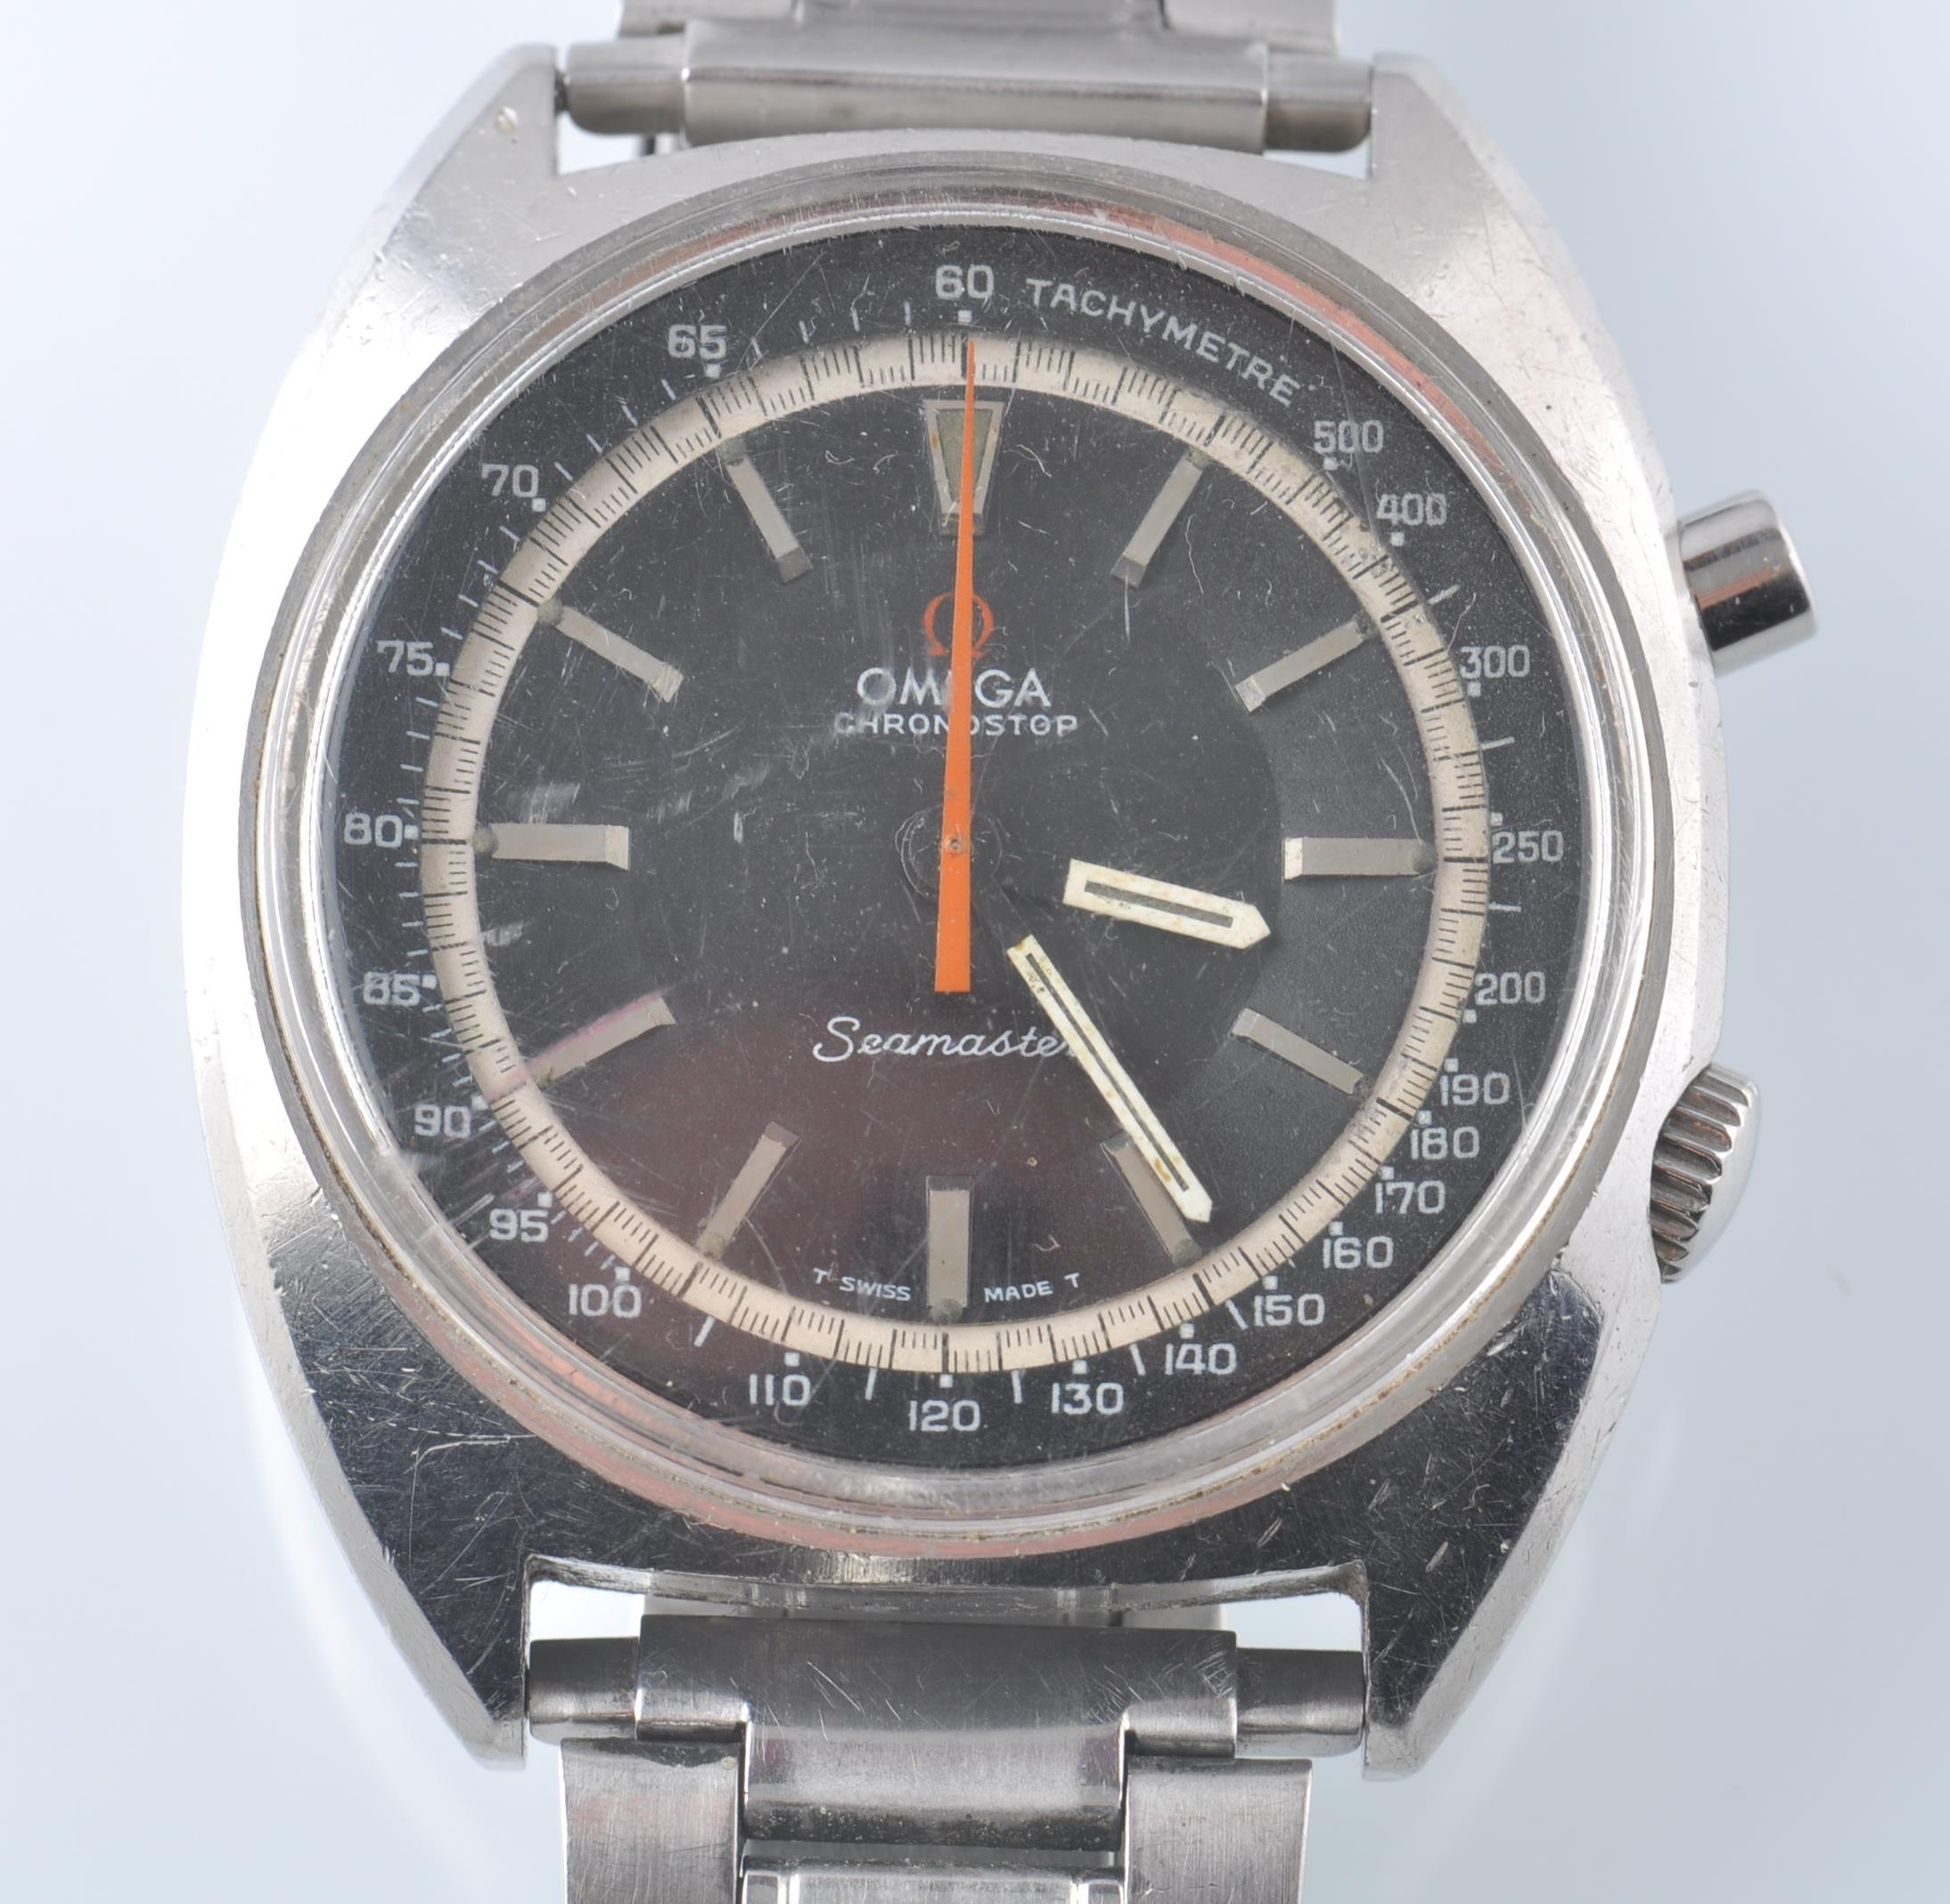 OMEGA SEAMASTER CHRONOSTOP BLACK FACED DIAL - Image 3 of 5